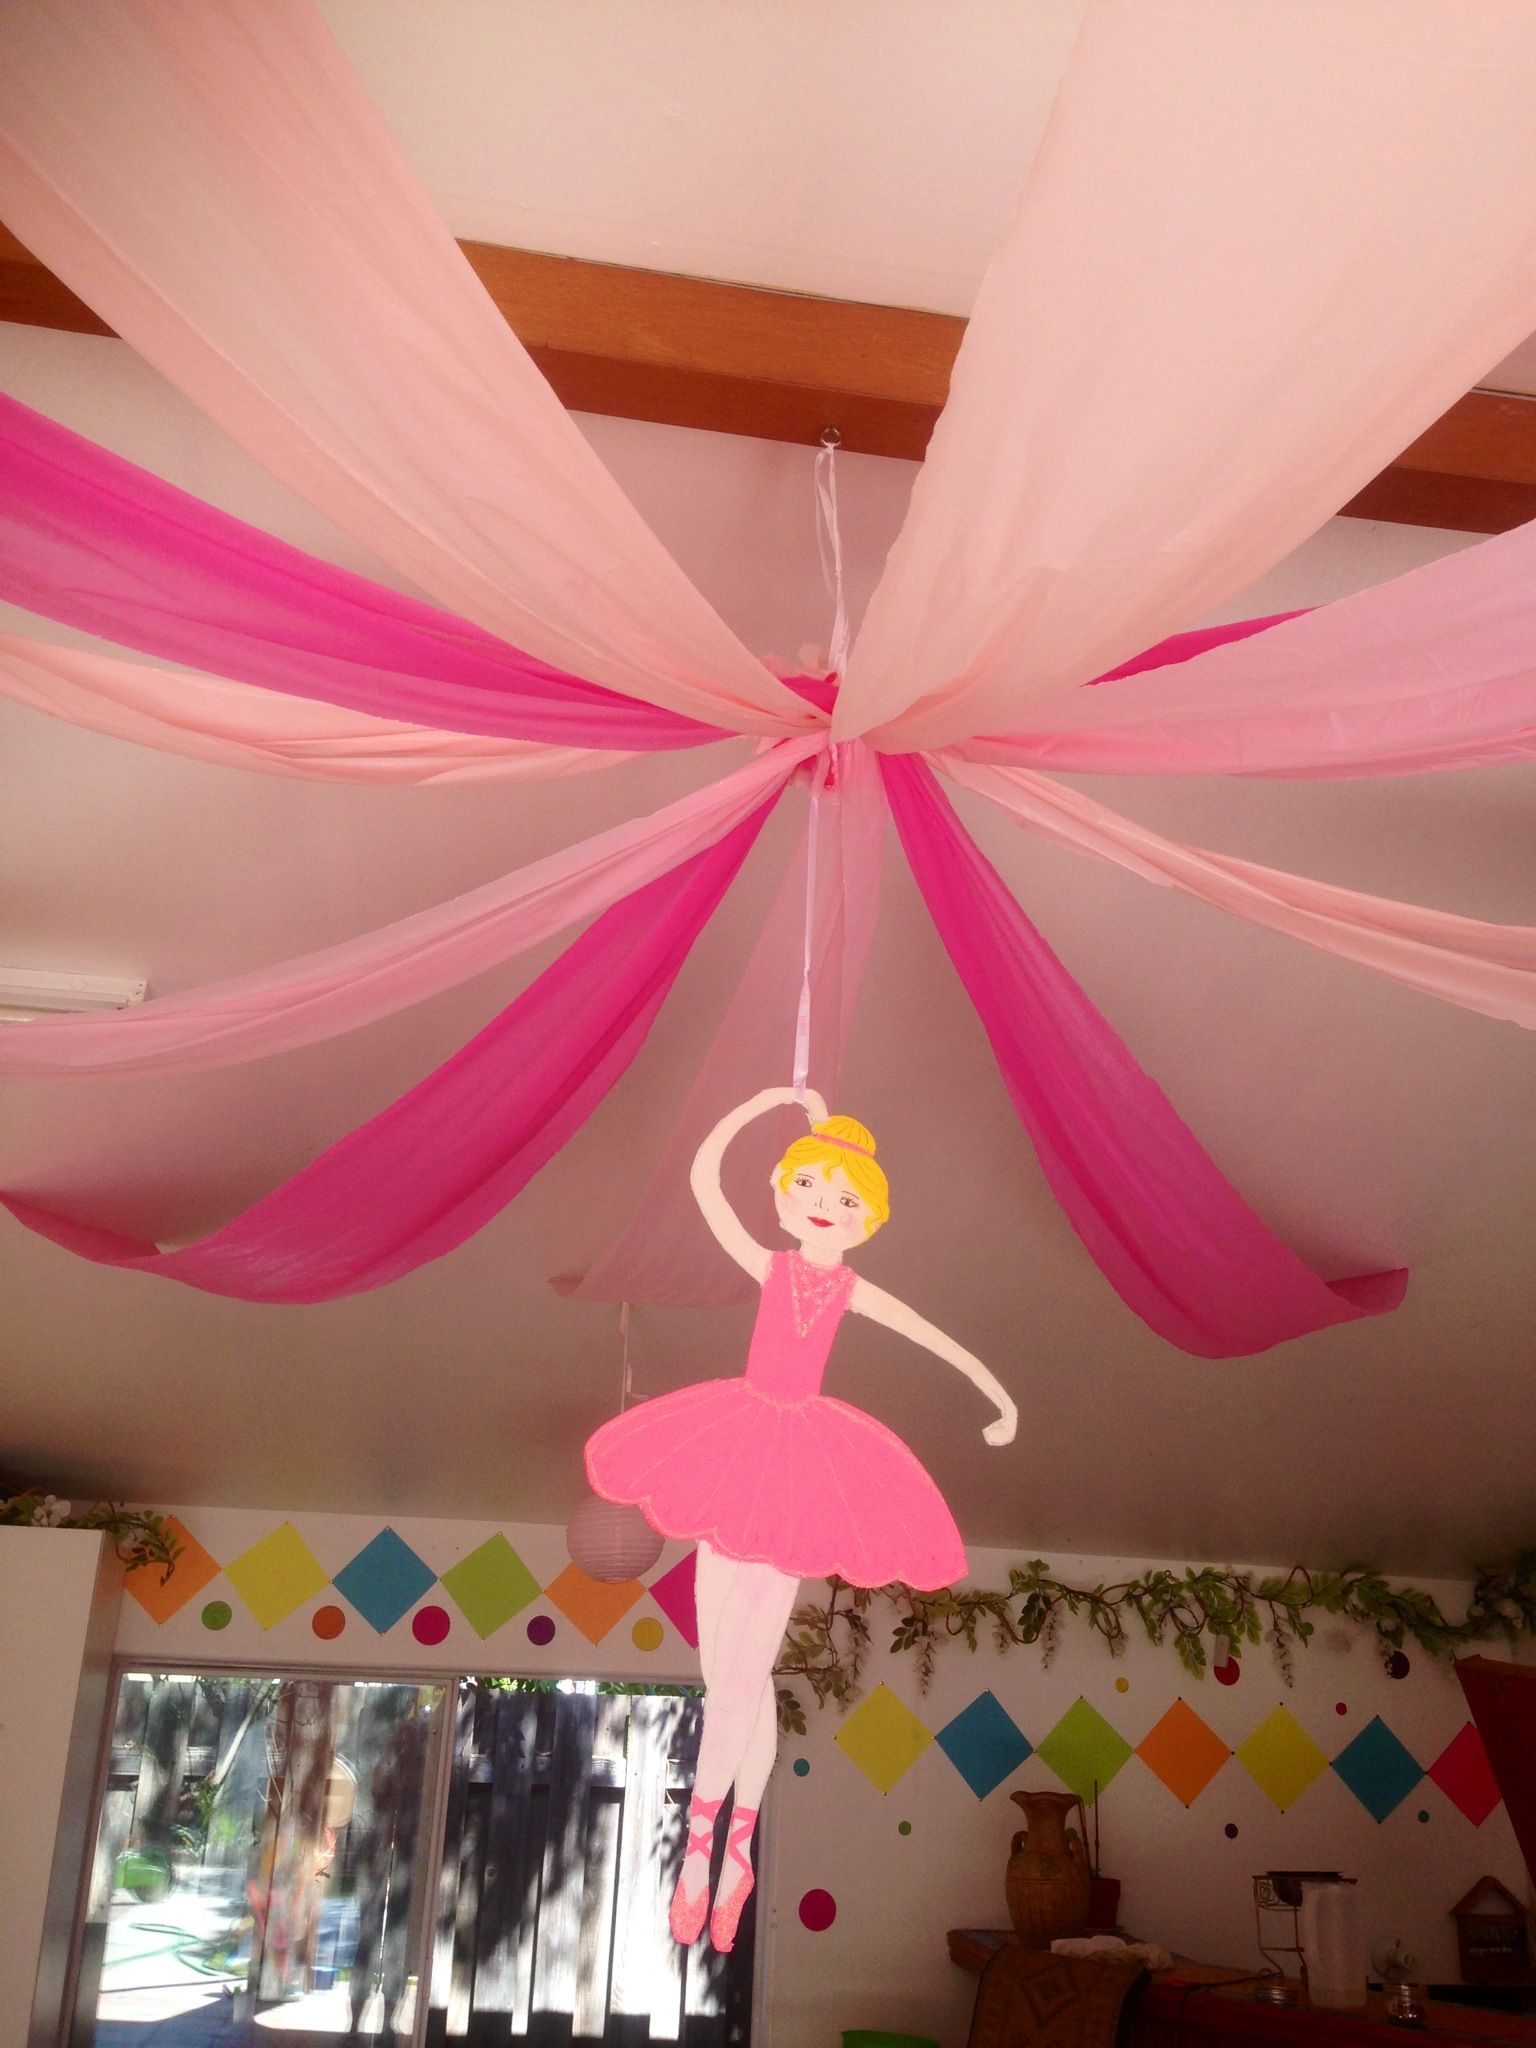 Ceiling decorations for ballerina party My Parties all crafted my